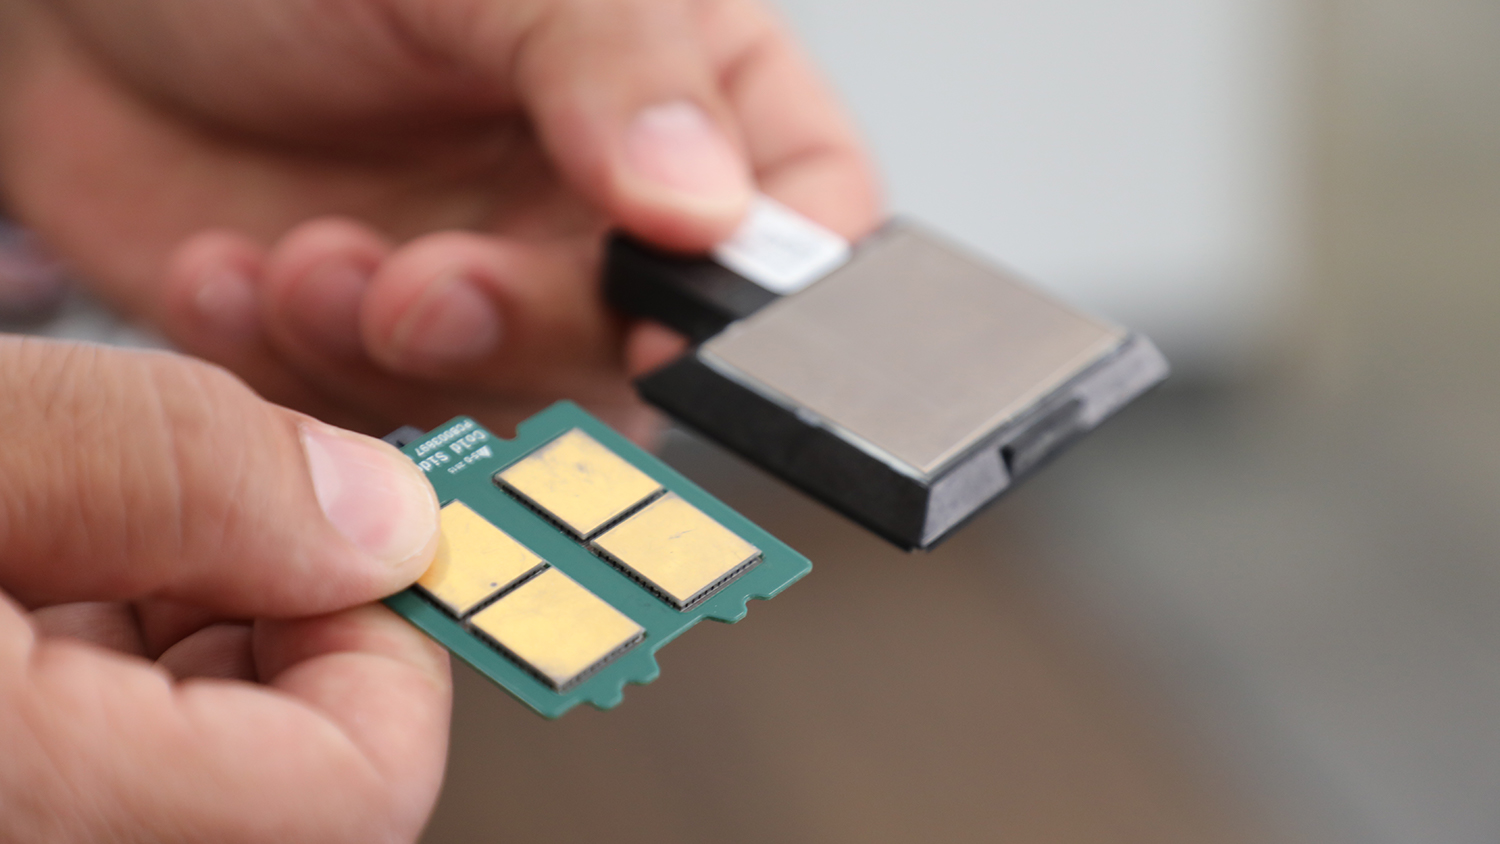 A thermoelectric computer chip.